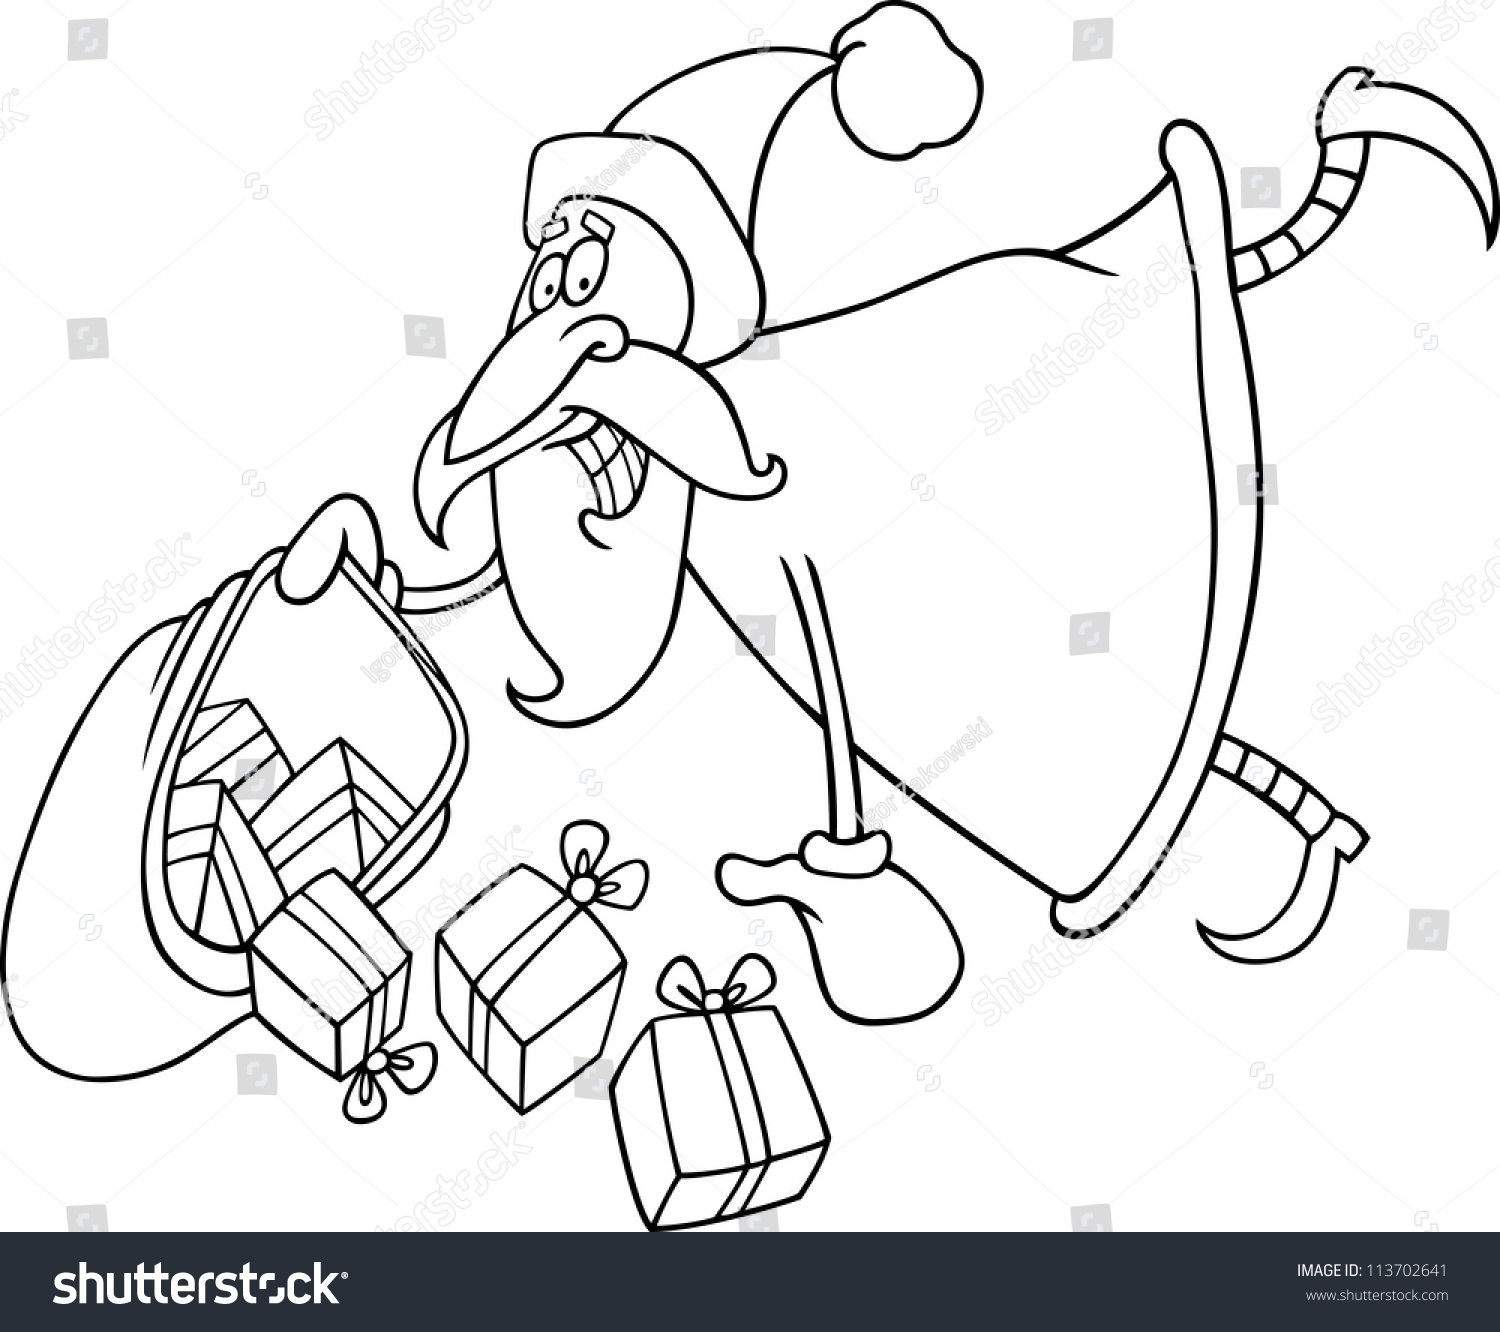 Santa Sack Coloring With Cartoon Illustration Flying Claus Stock